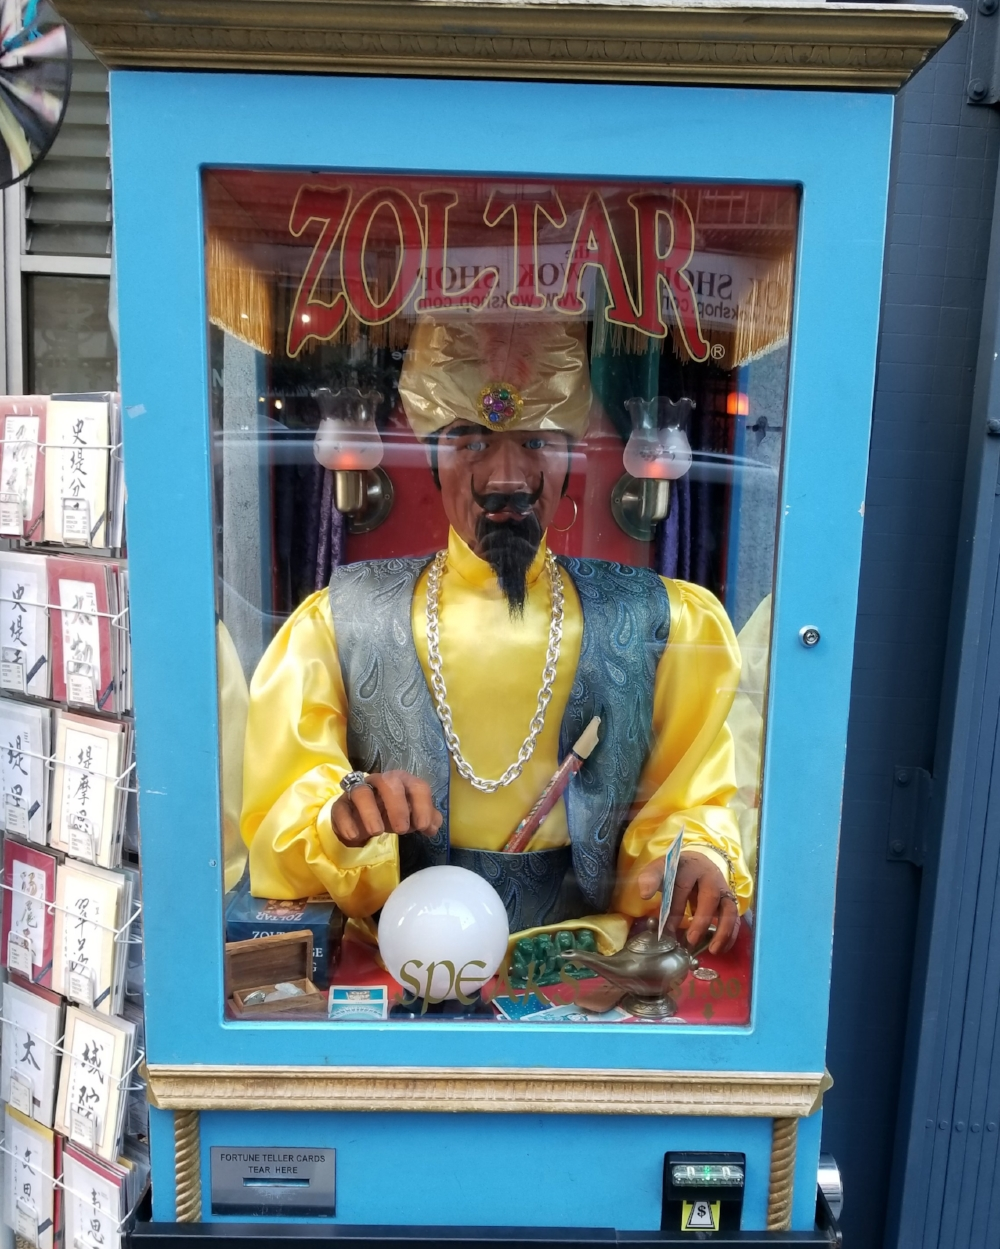 Zoltar the Great